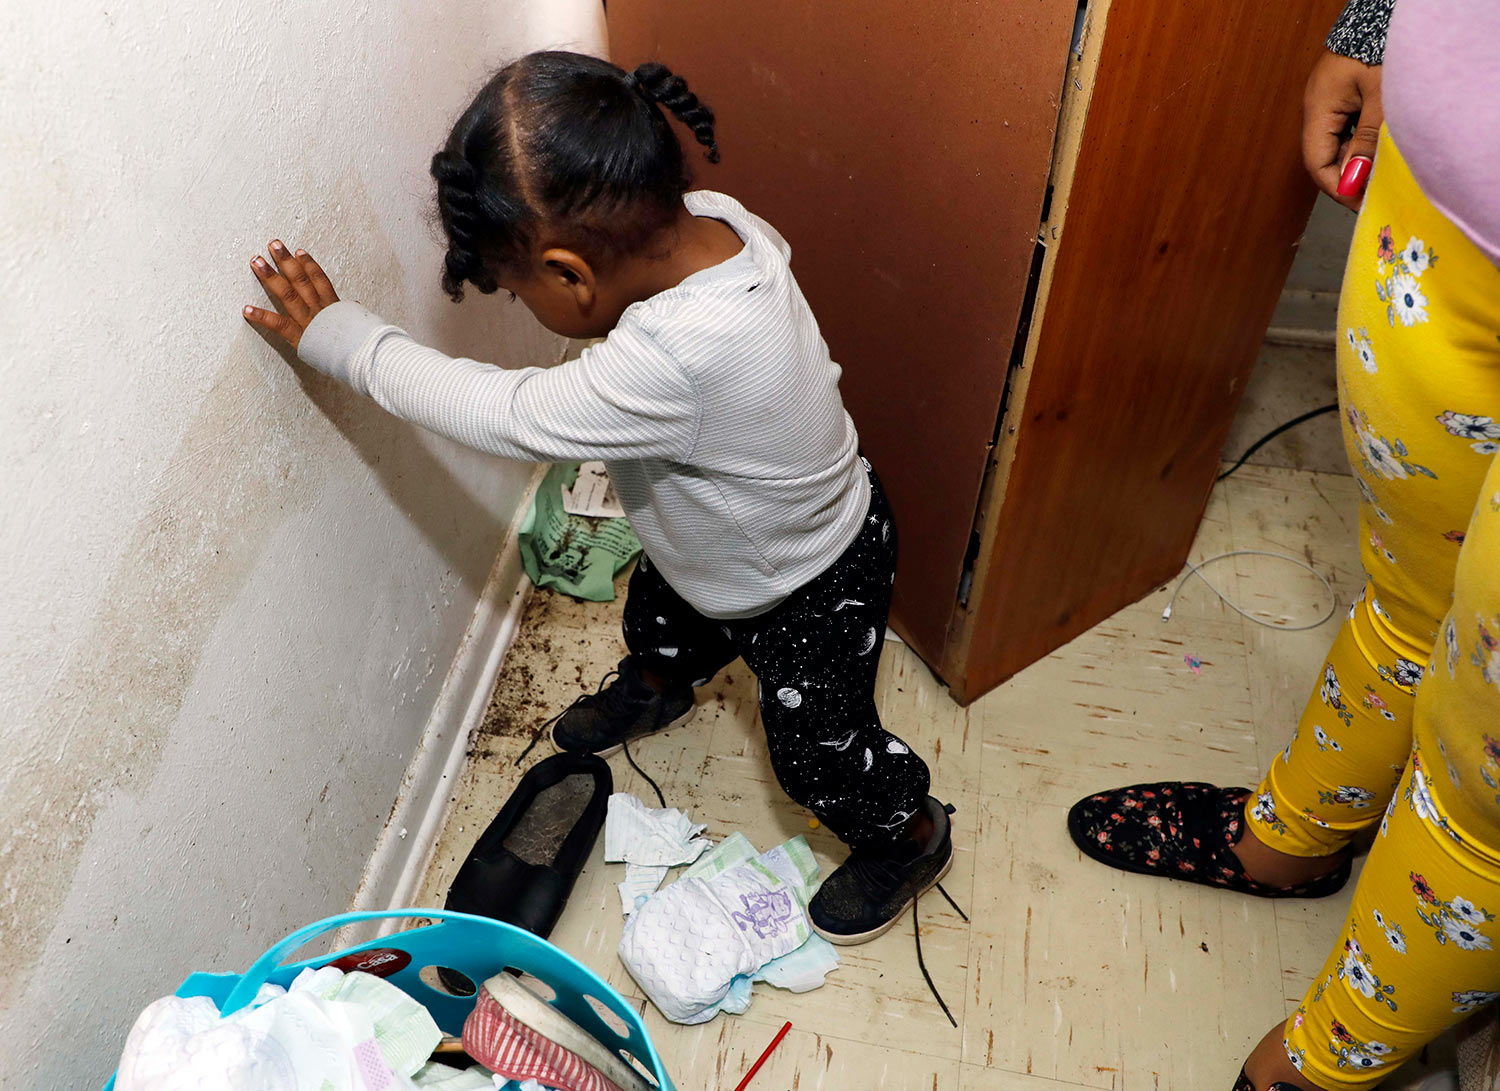 In this Feb. 20, 2019 photo, Destiny Johnson's son, Hayden Howard, 2, steps on roaches in his mother's apartment in Cedarhurst Homes, a federally subsidized, low-income apartment complex in Natchez, Miss. The complex failed a health and safety inspection in each of the past three years. Upset with conditions, Johnson moved out in late March. (AP Photo/Rogelio V. Solis)